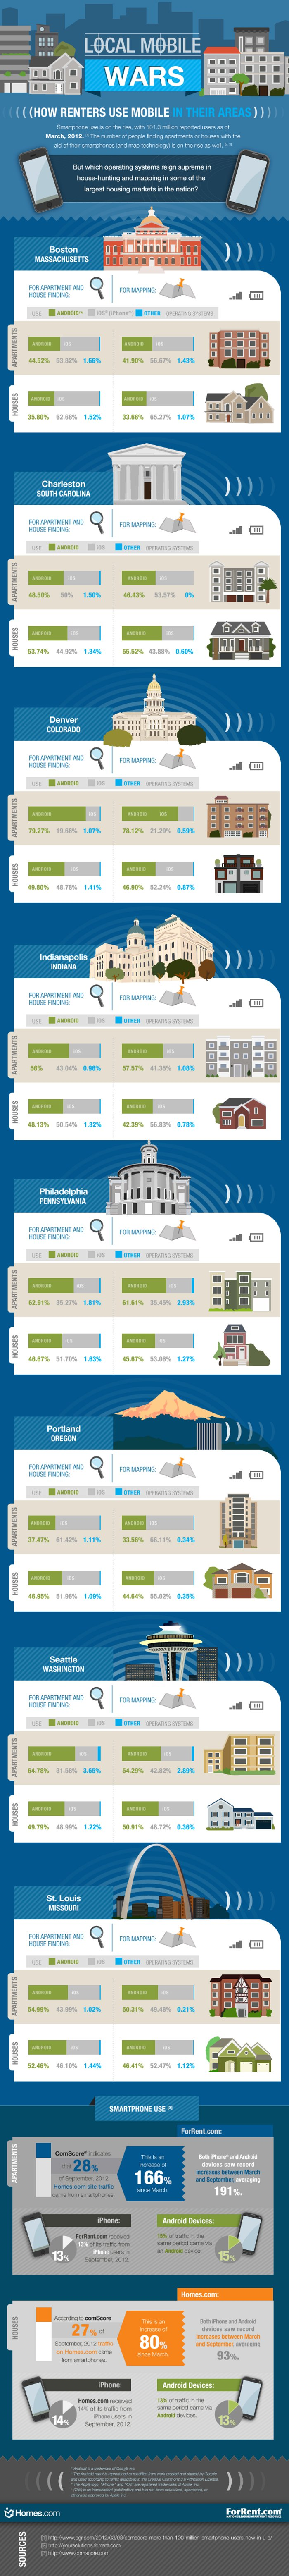 Infographic on house hunting